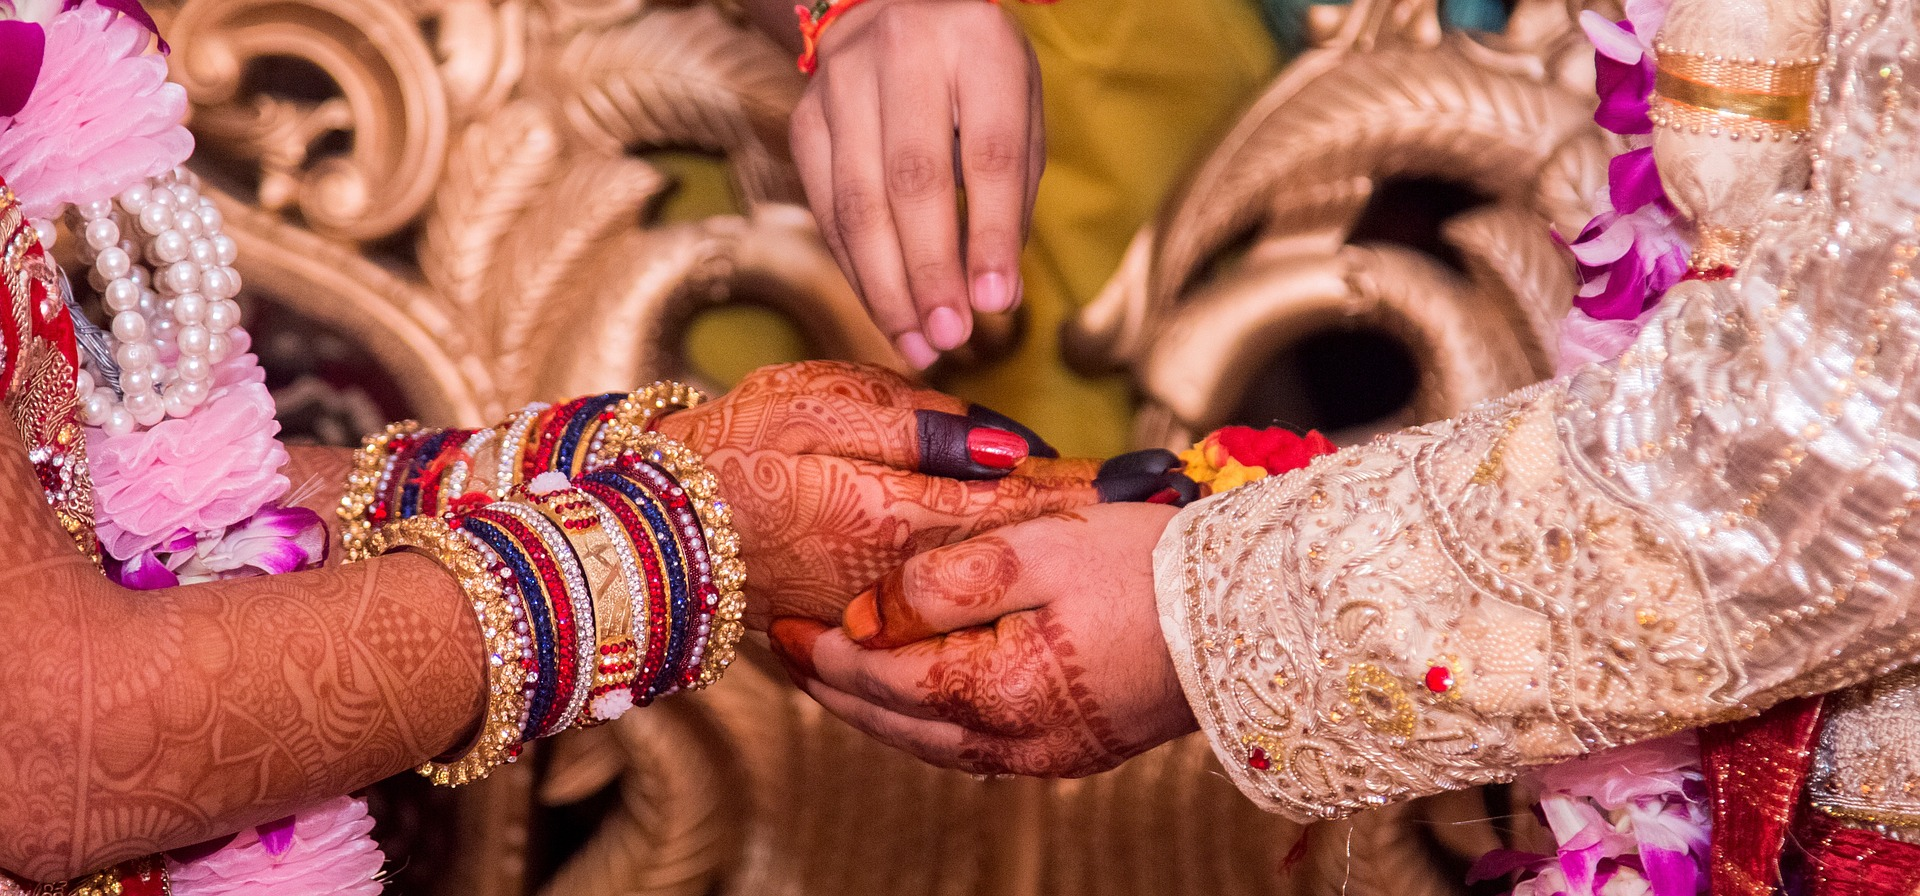 Matrimony com Finds Indian Women Want Complete Equality in